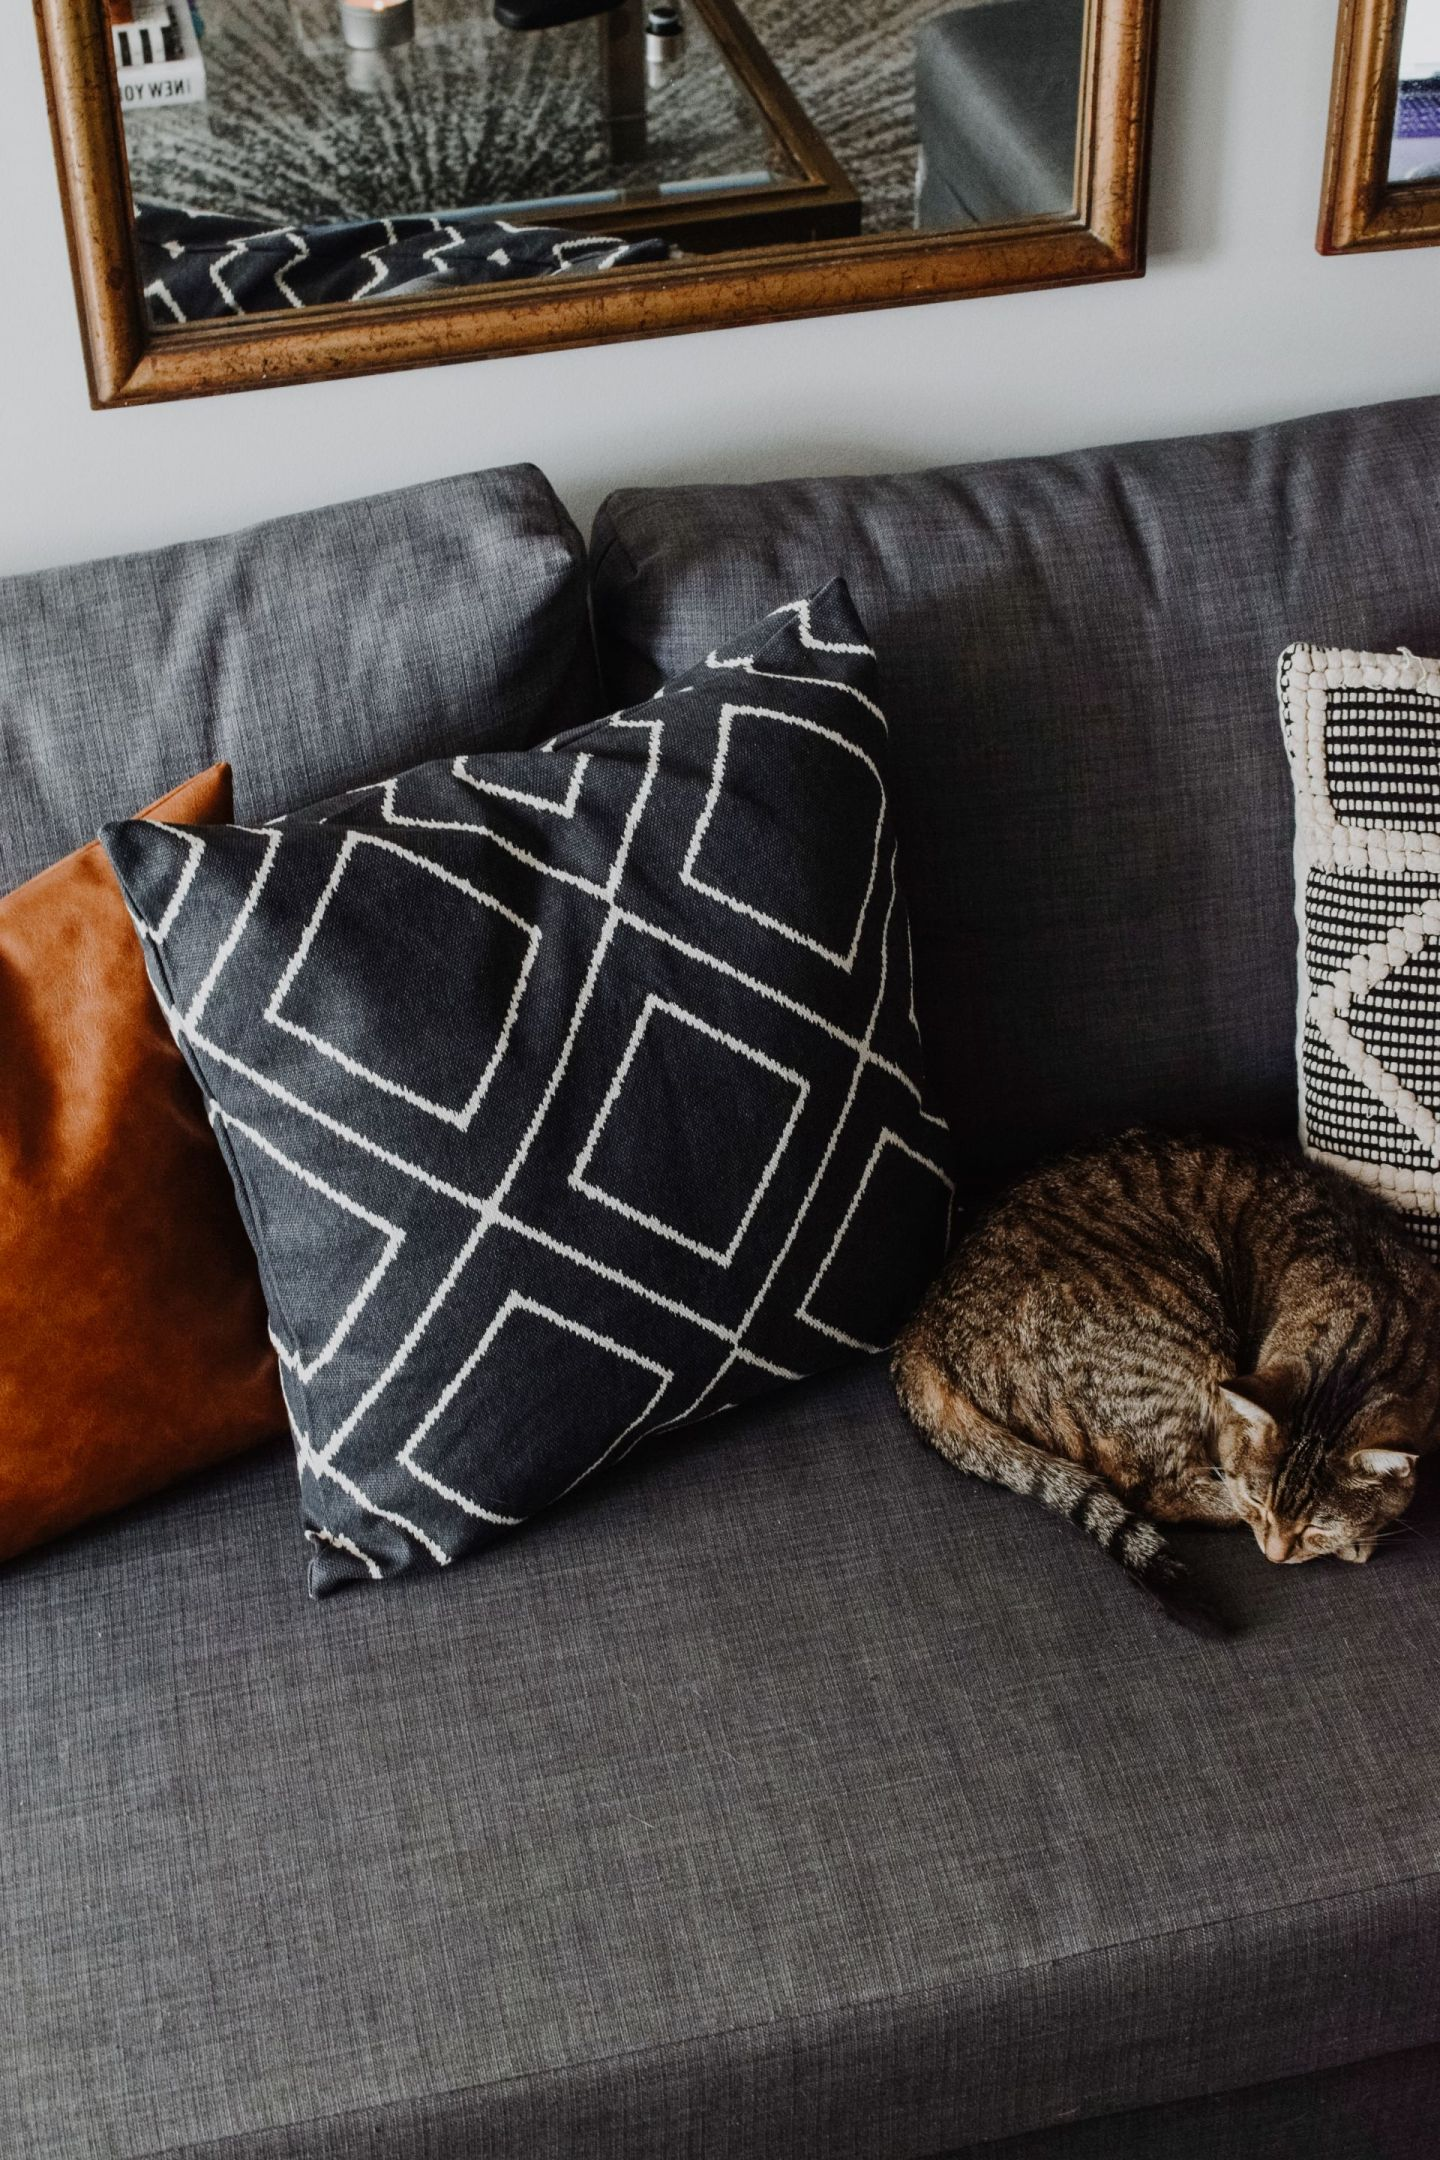 where to buy cheap accent pillows - h&M pillow covers - H&M pillow cover review